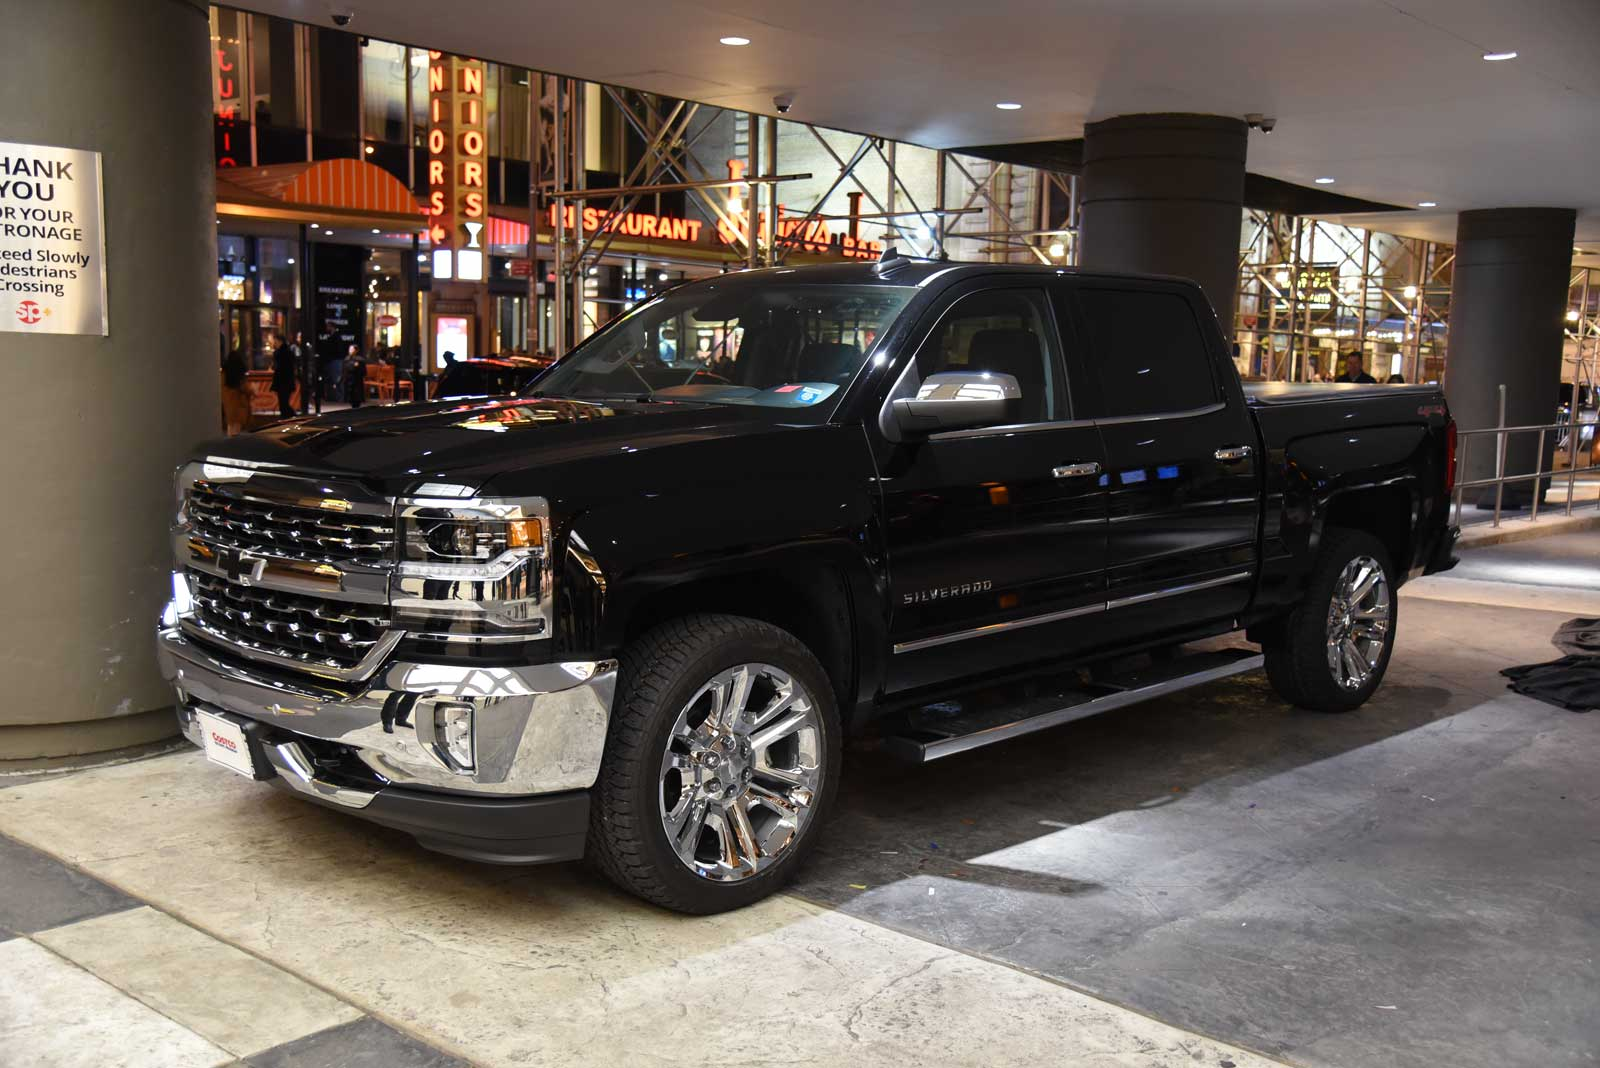 Costco Chevrolet Silverado Live Photo 01